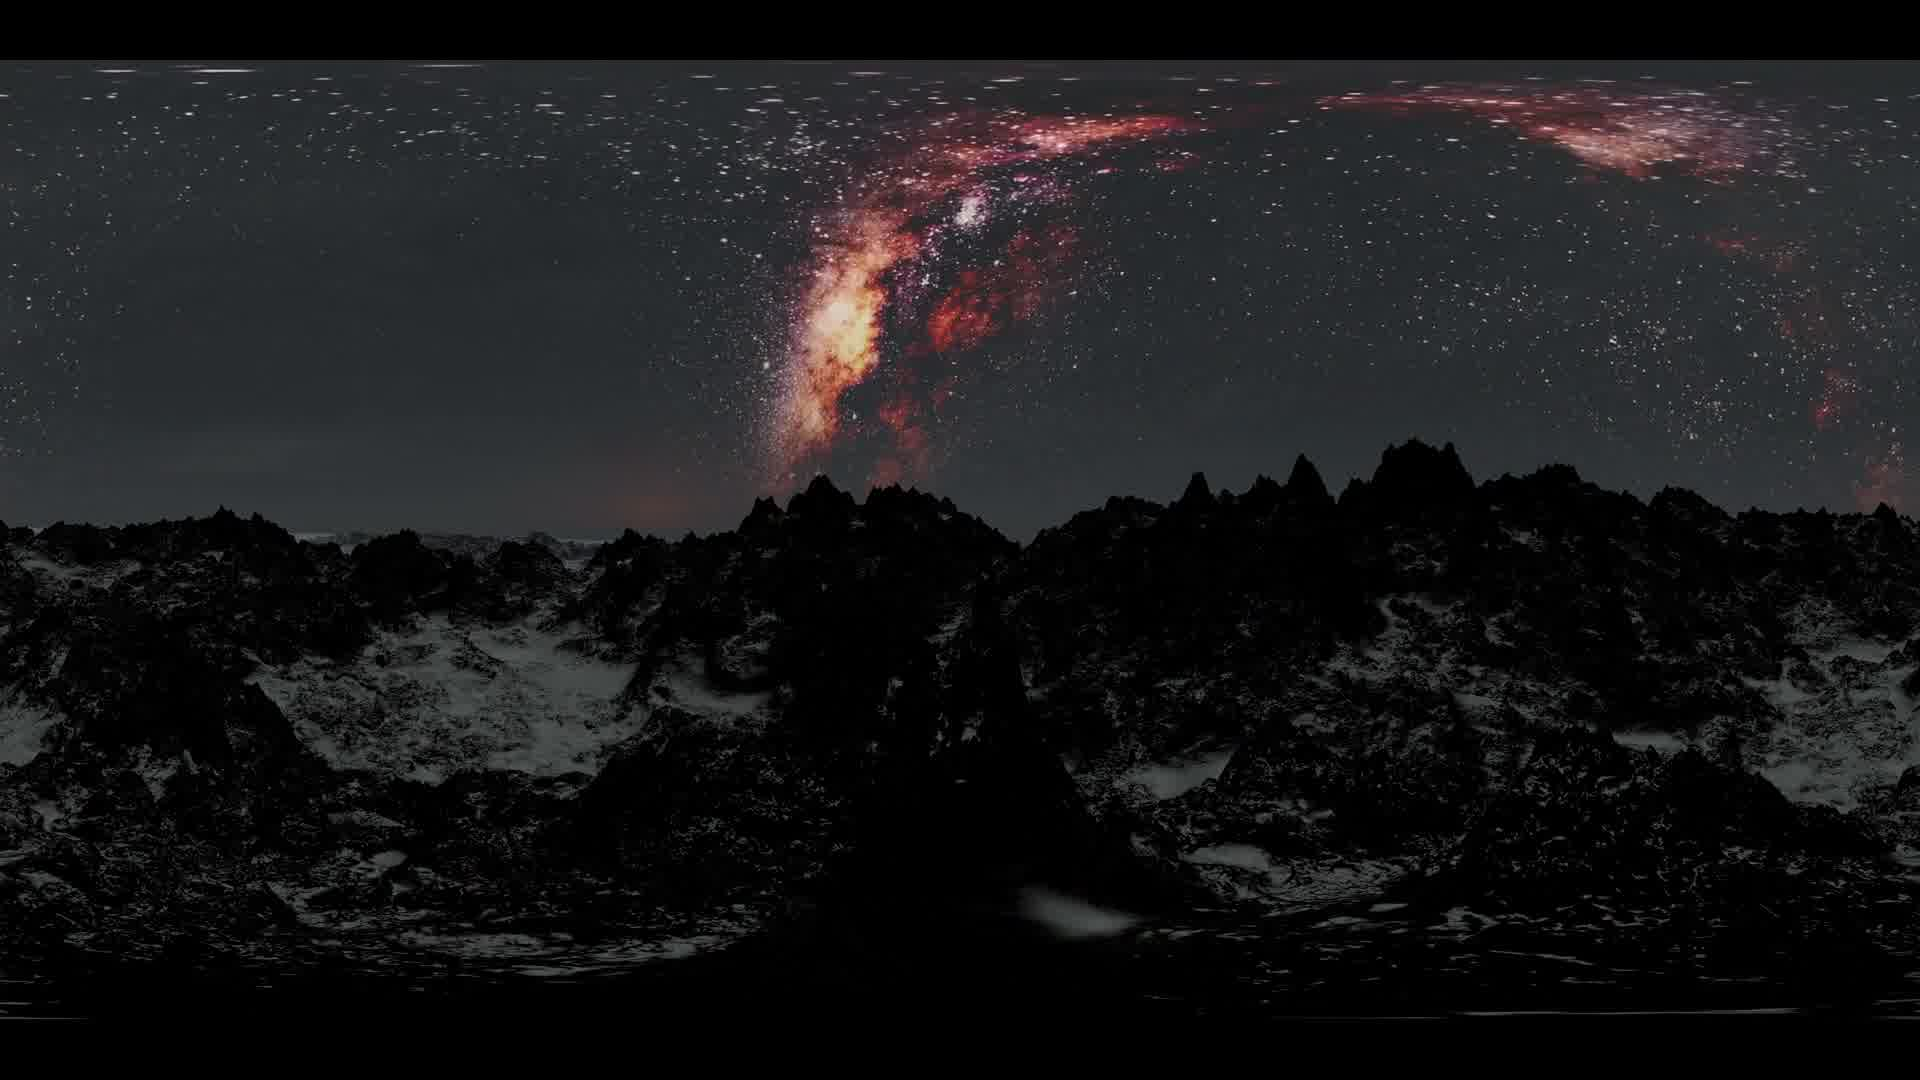 Milky Way stars at sunset in mountains virtual reality 360 degree video